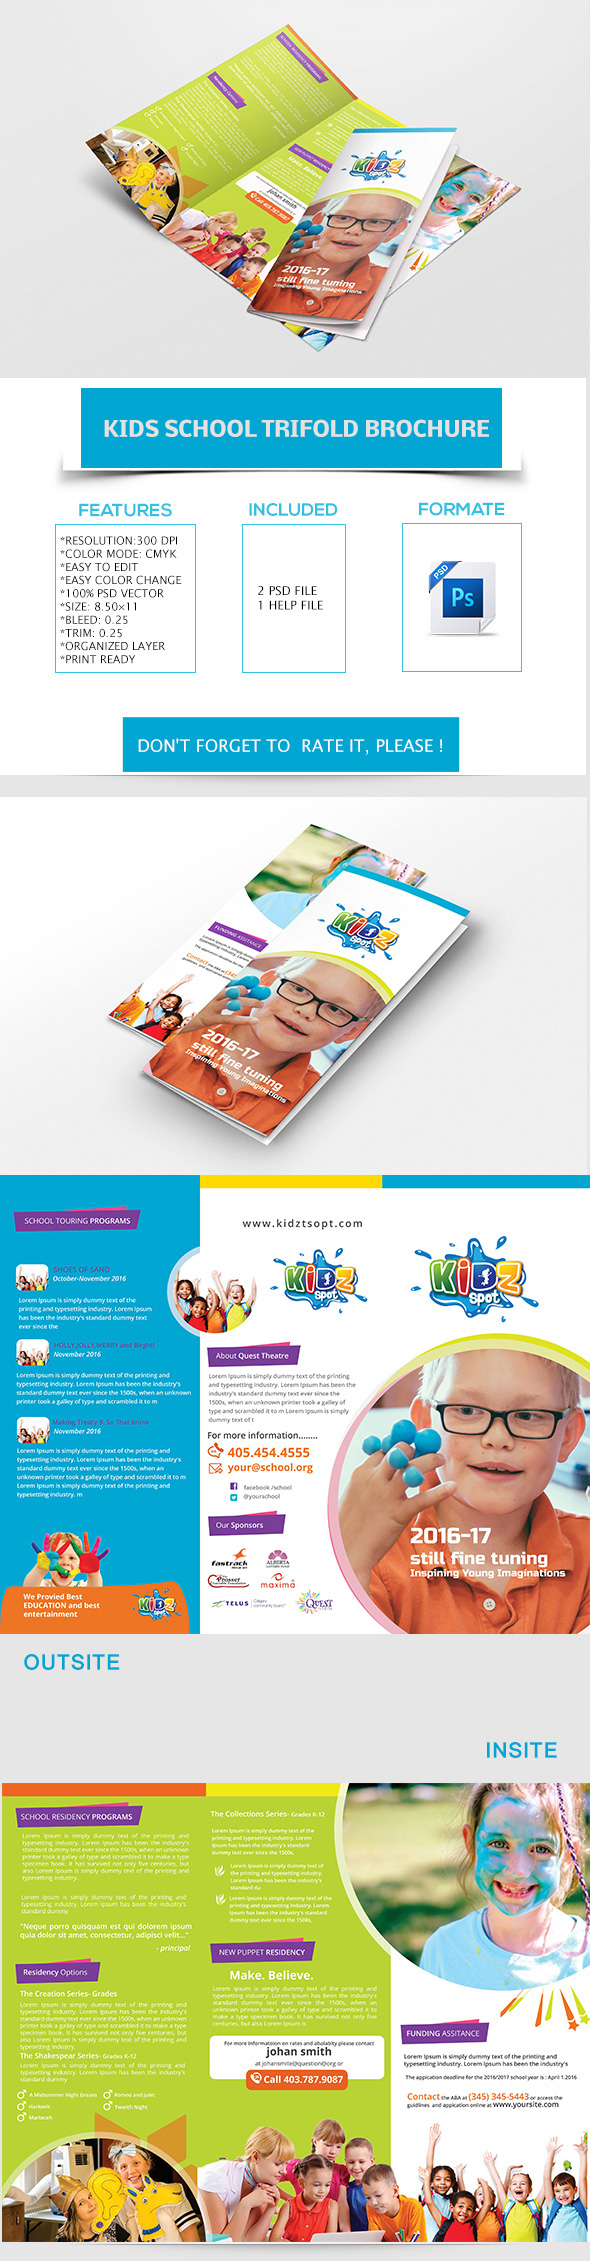 Kid s school trifold brochure template free download on for Brochure template for kids